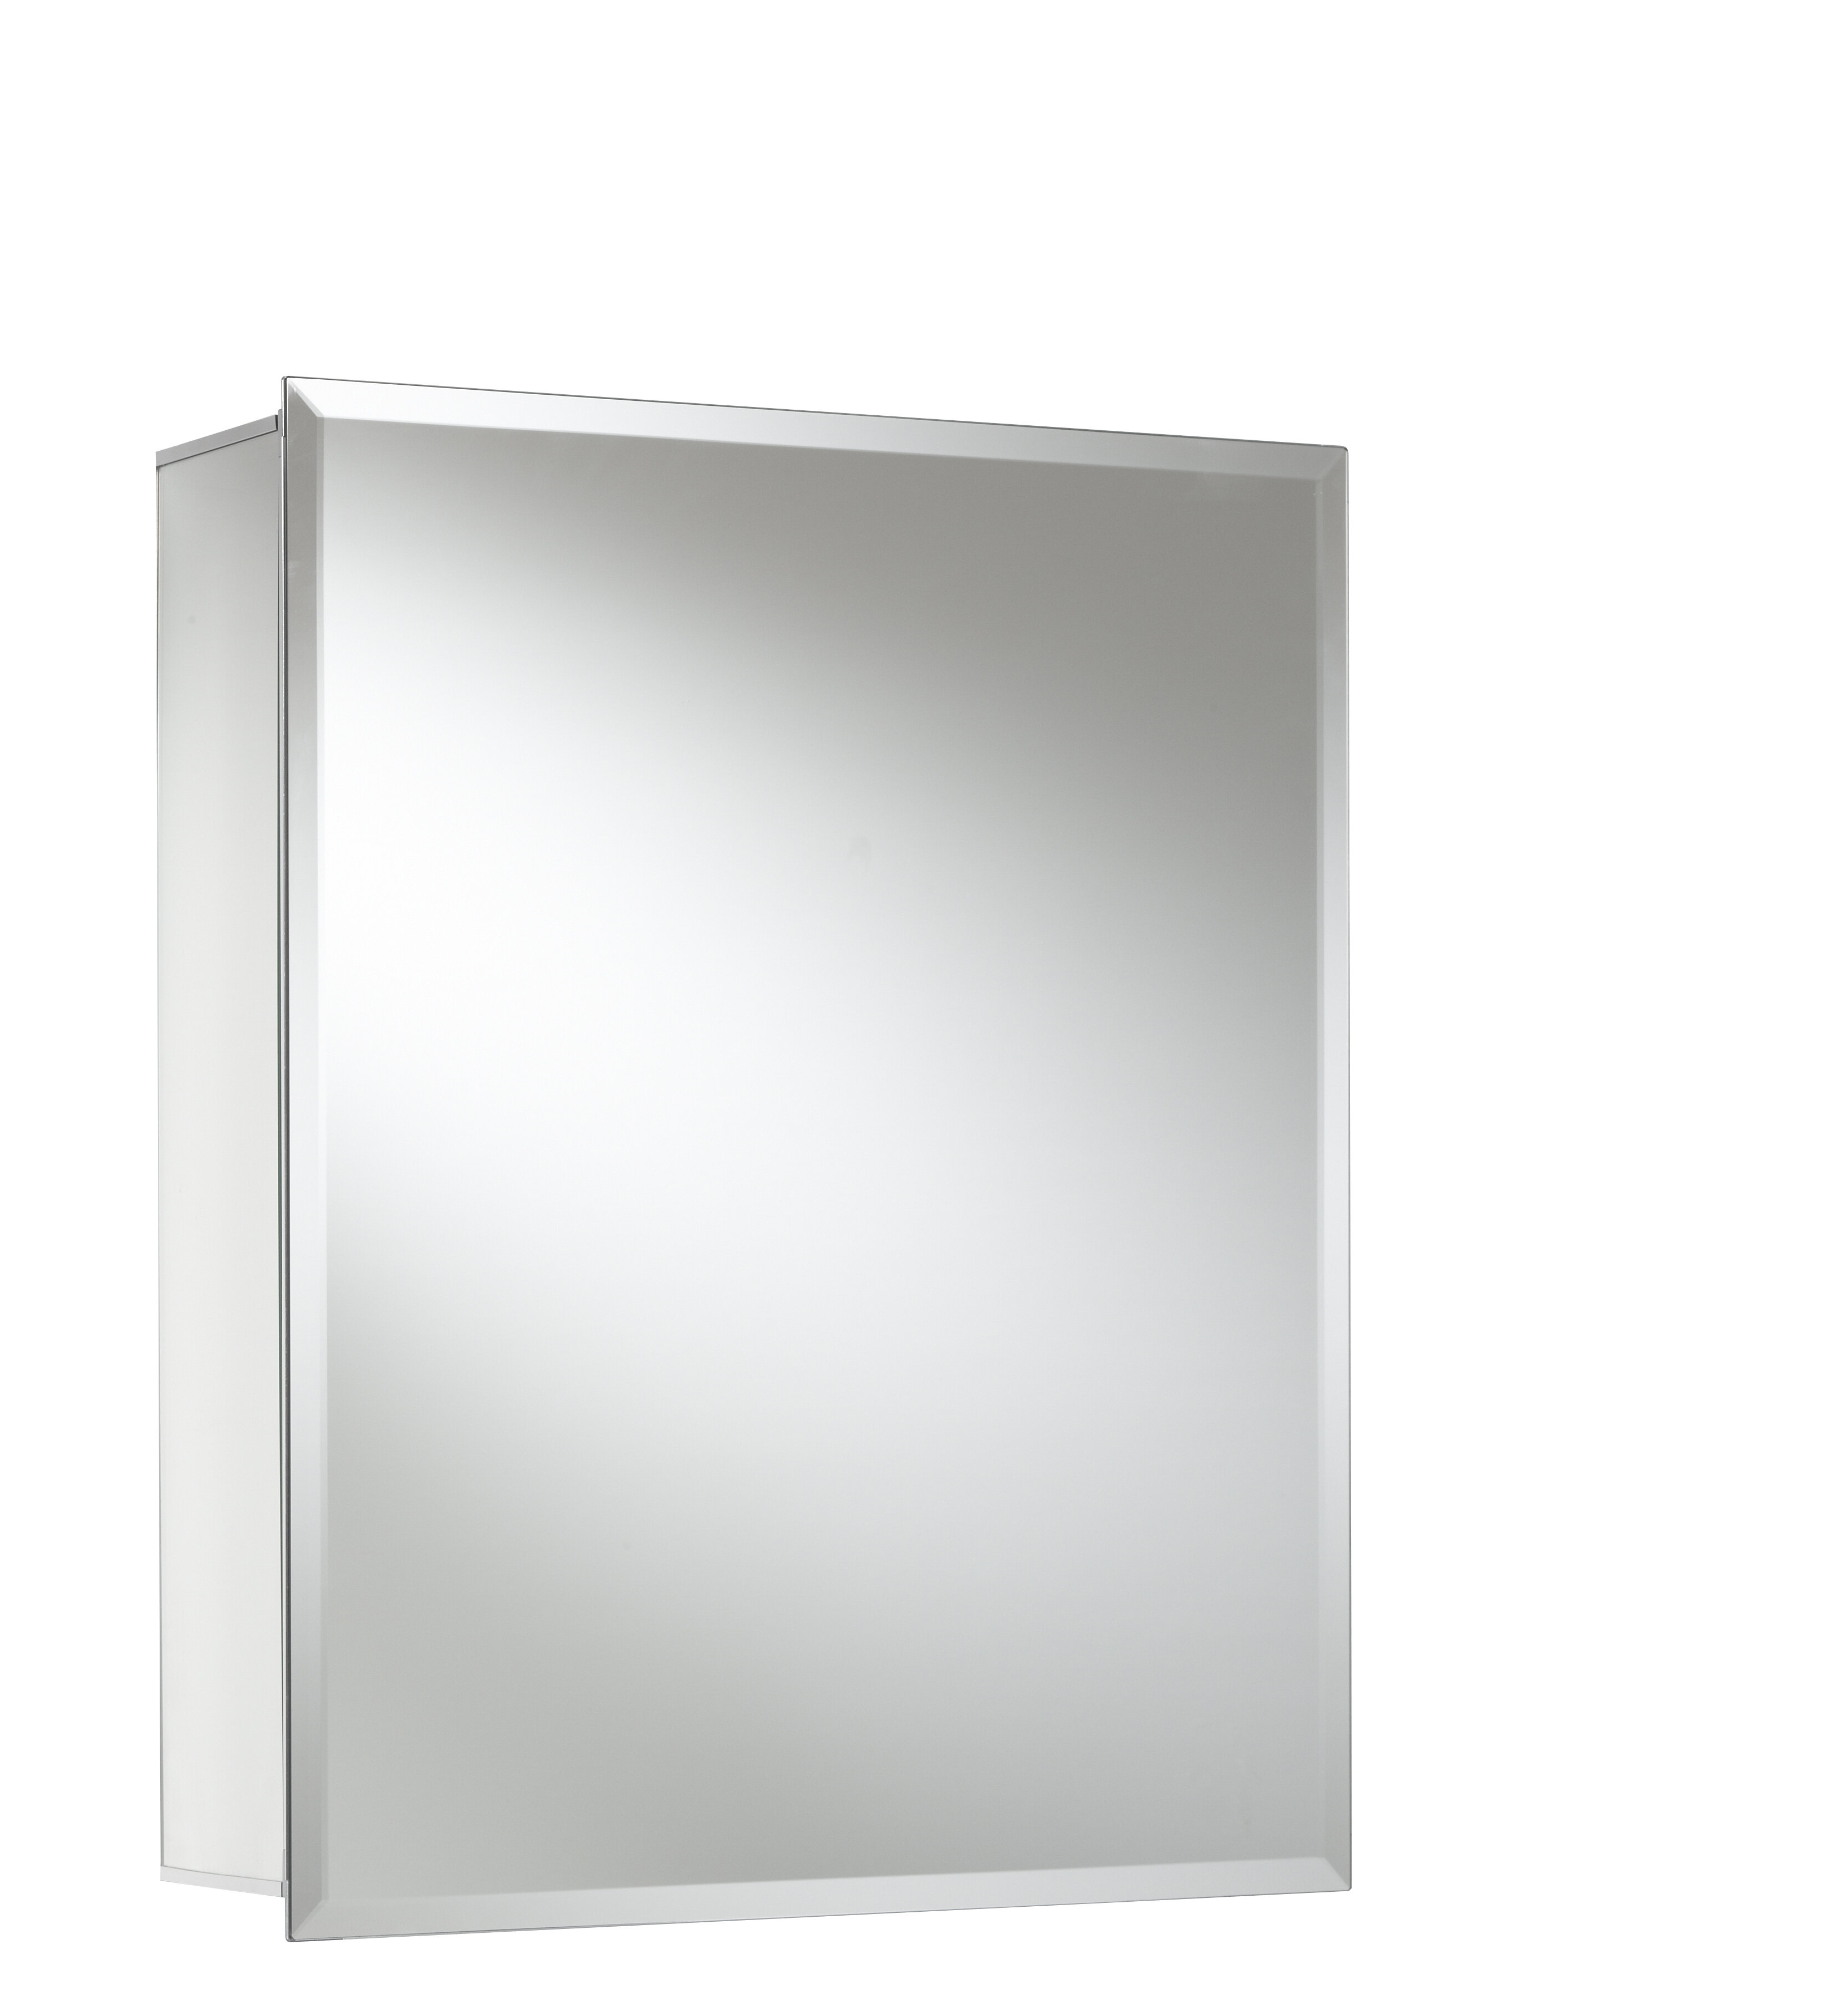 Jacuzzi 16 X 20 Recessed Or Surface Mount Medicine Cabinet Reviews Wayfair